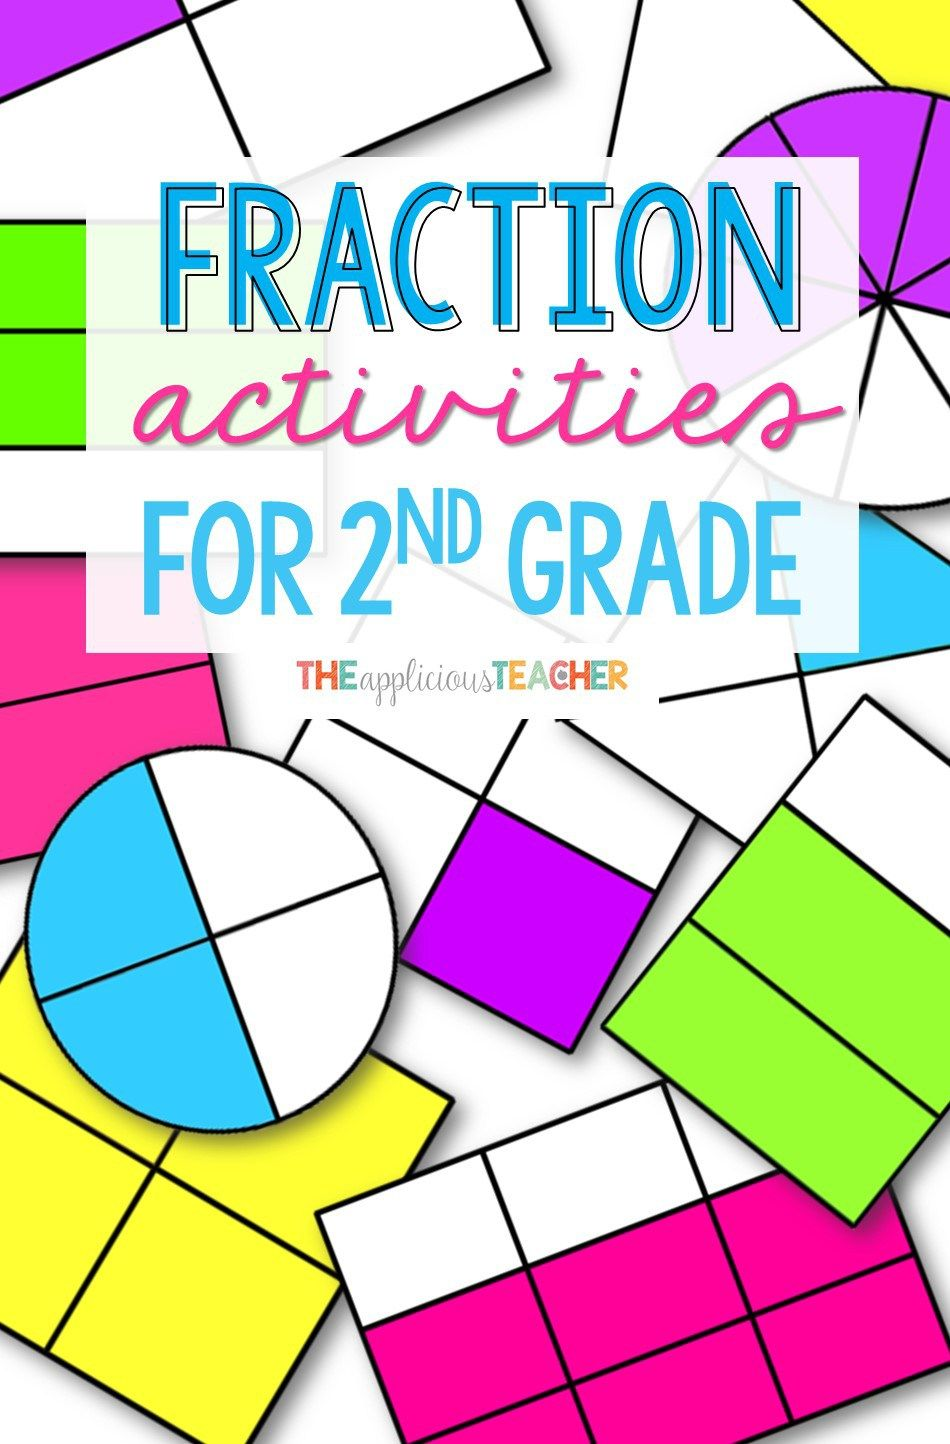 fraction activity ideas that are perfect for 2nd grade. I love the game at the end of this post!